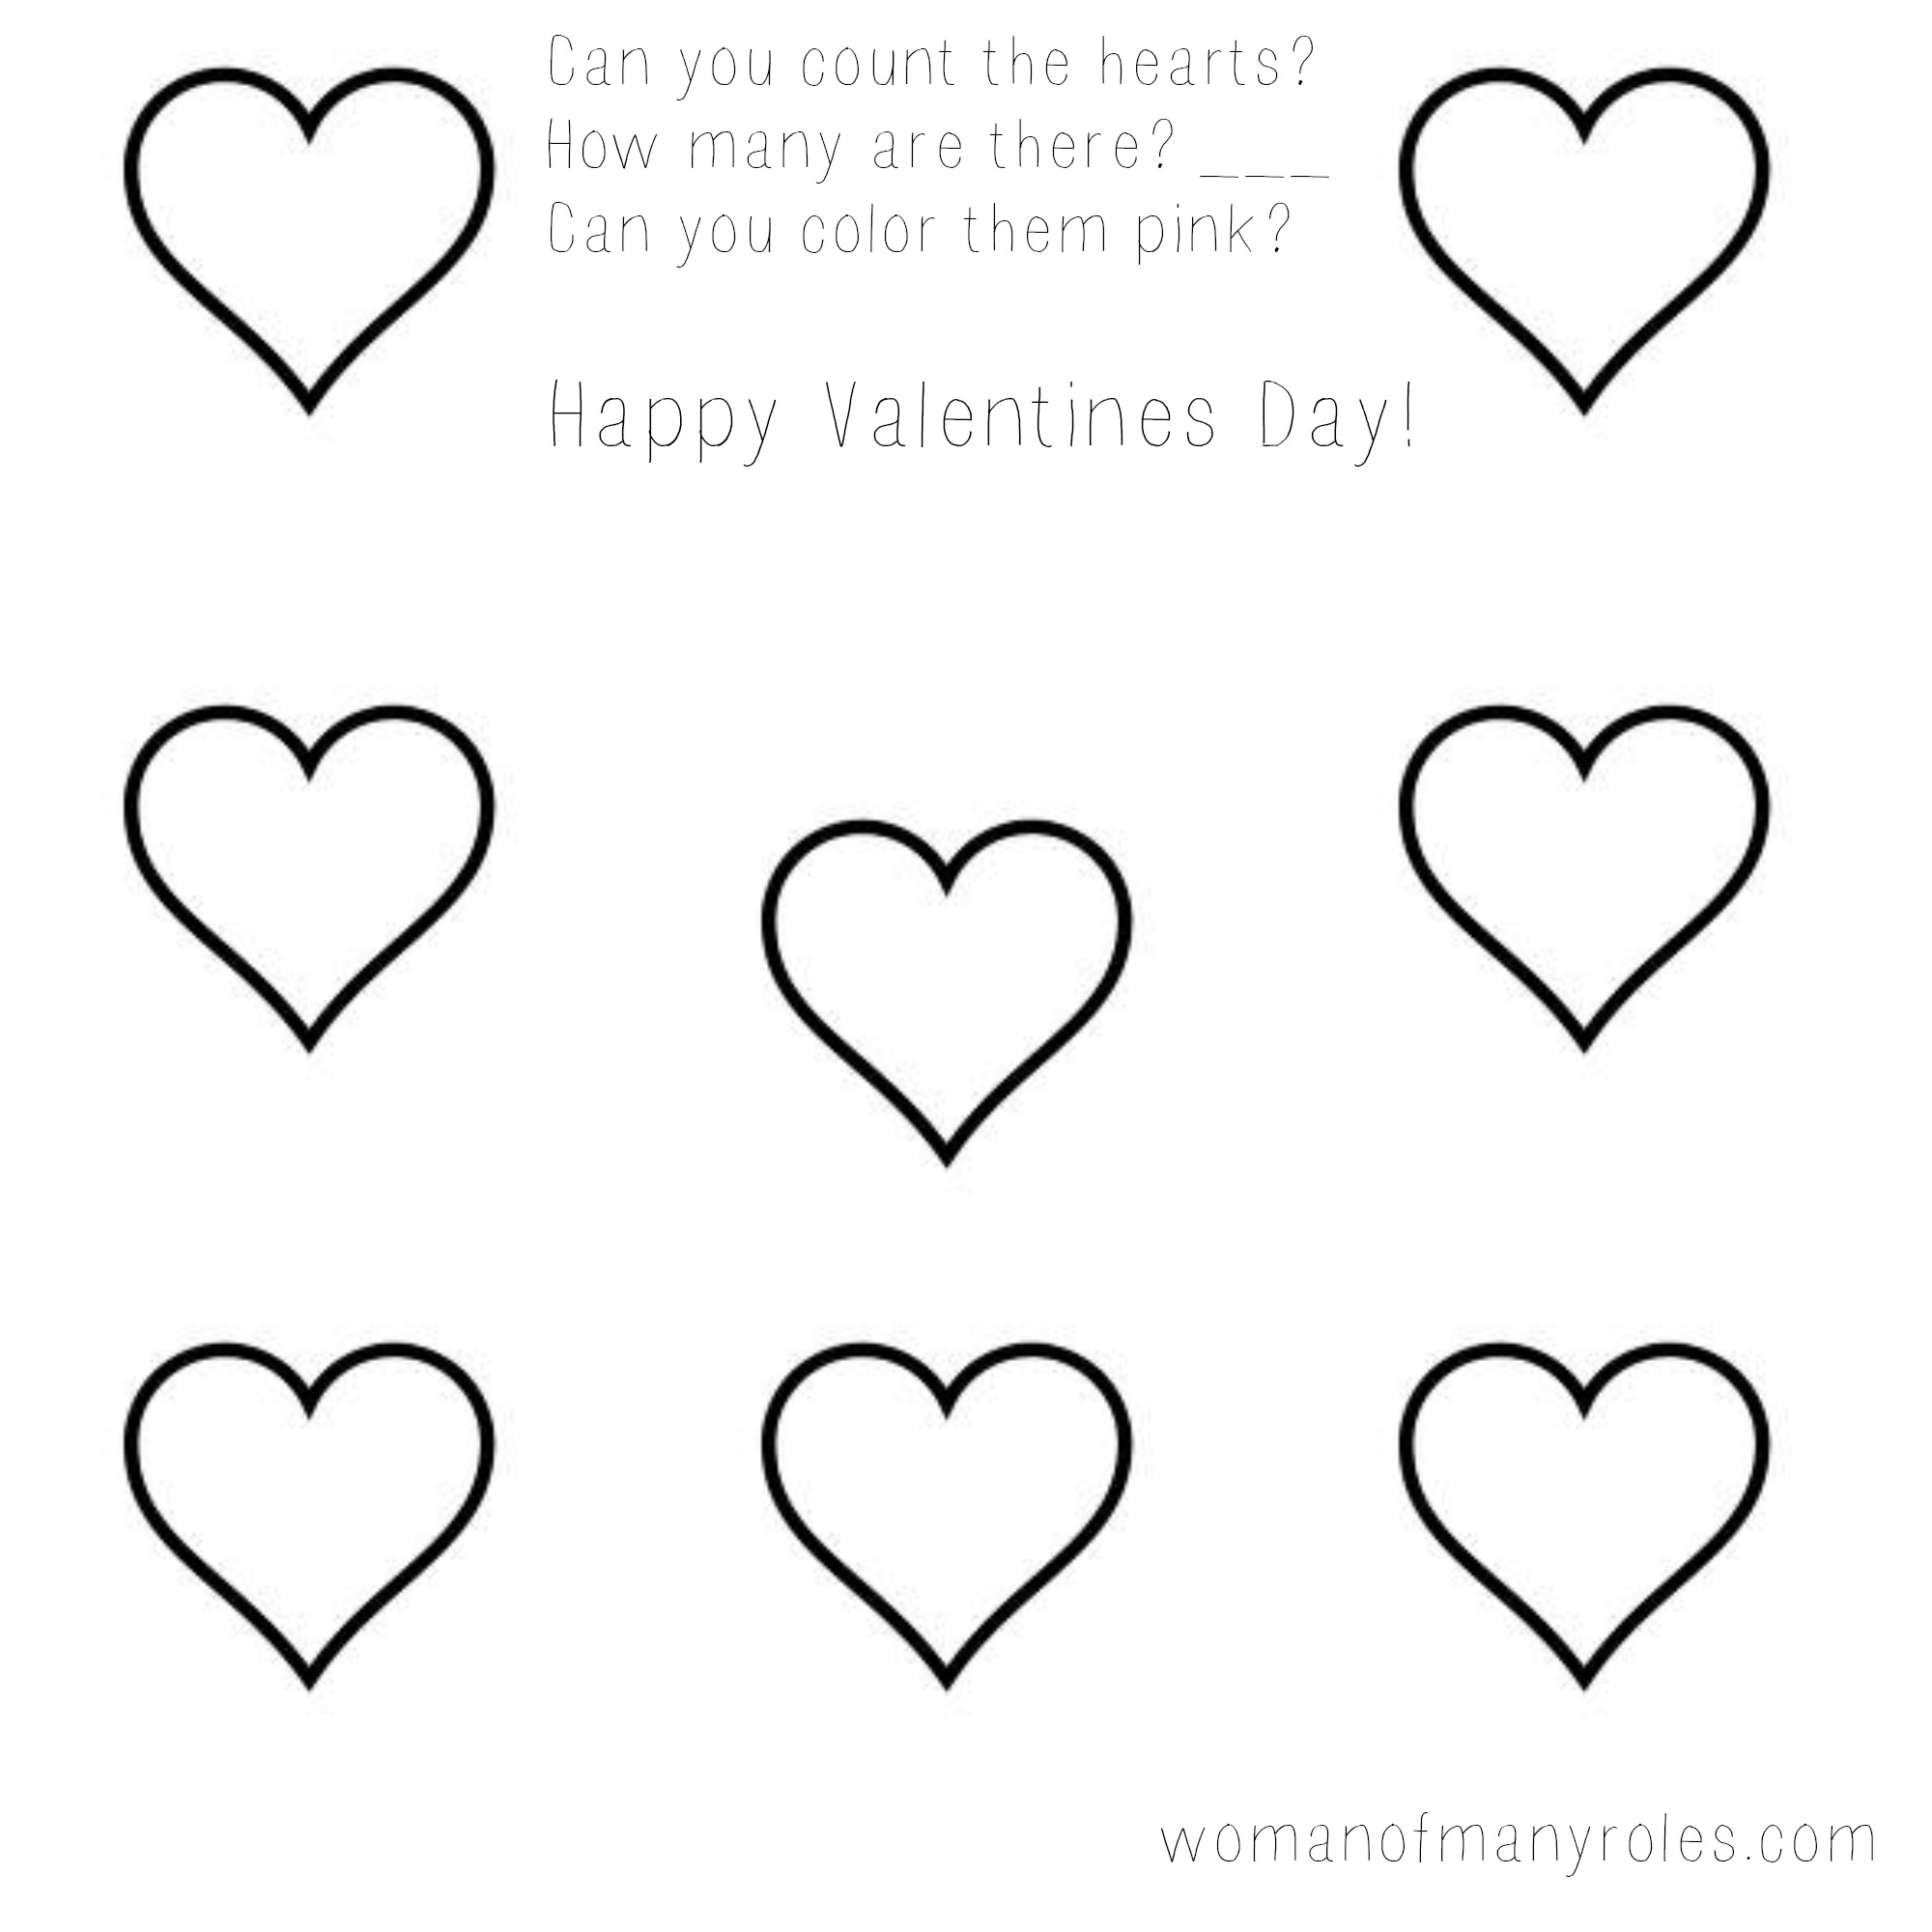 Preschool Valentine Printable Worksheets That Are